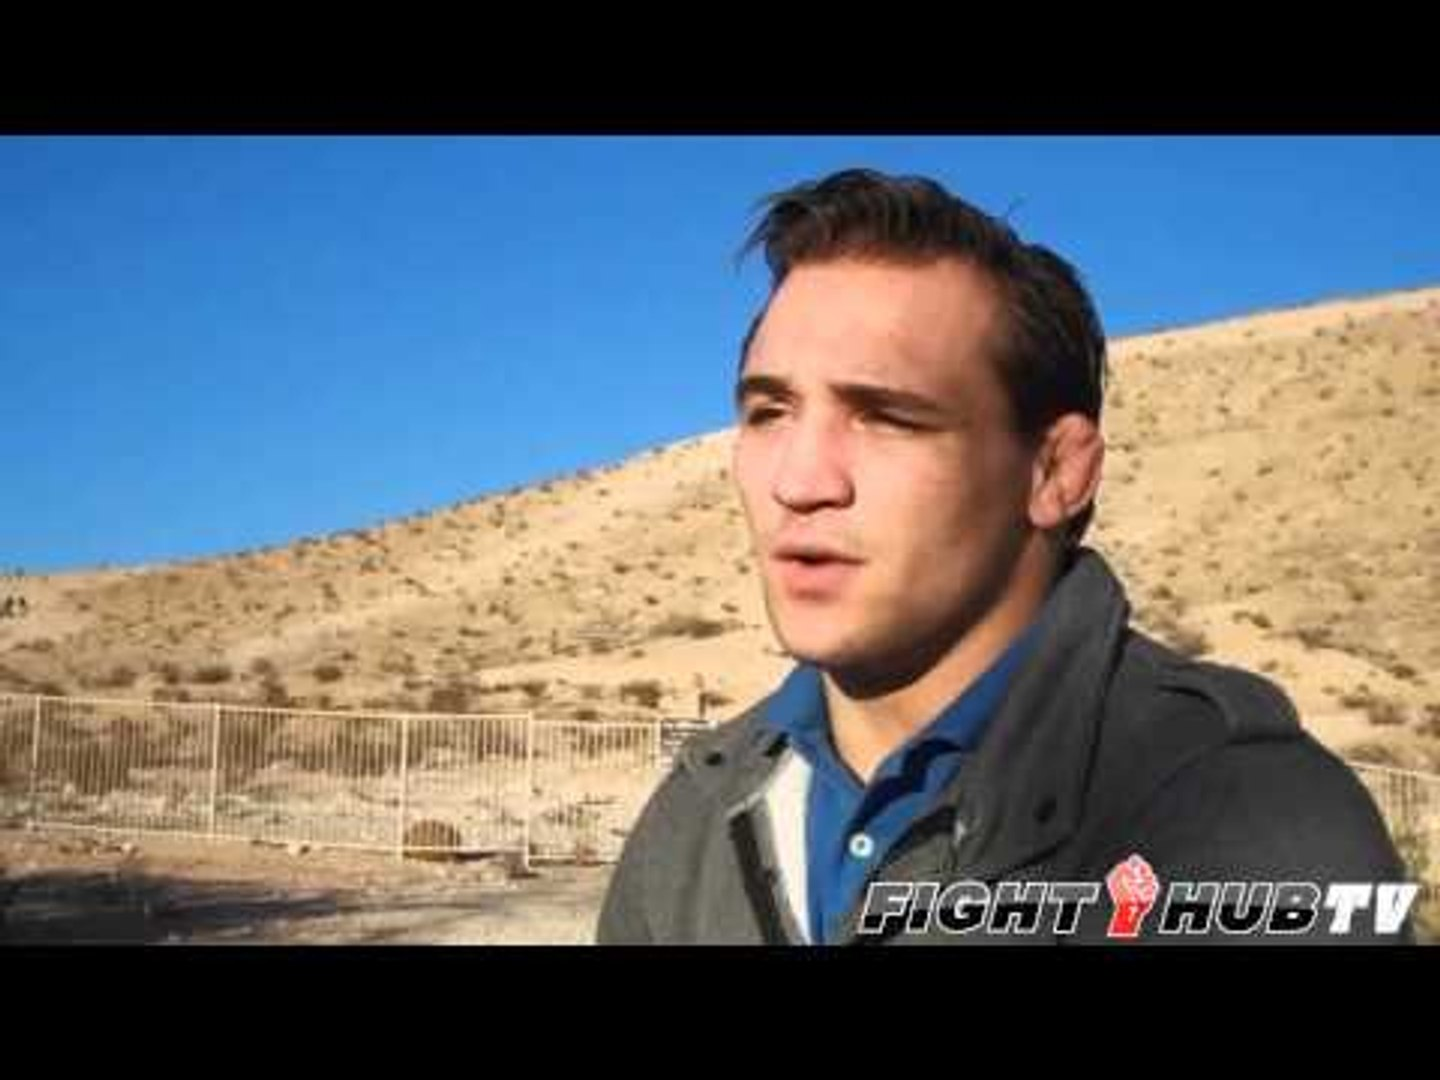 Michael Chandler talks about becoming the best lightweight in the world & favorite tv shows